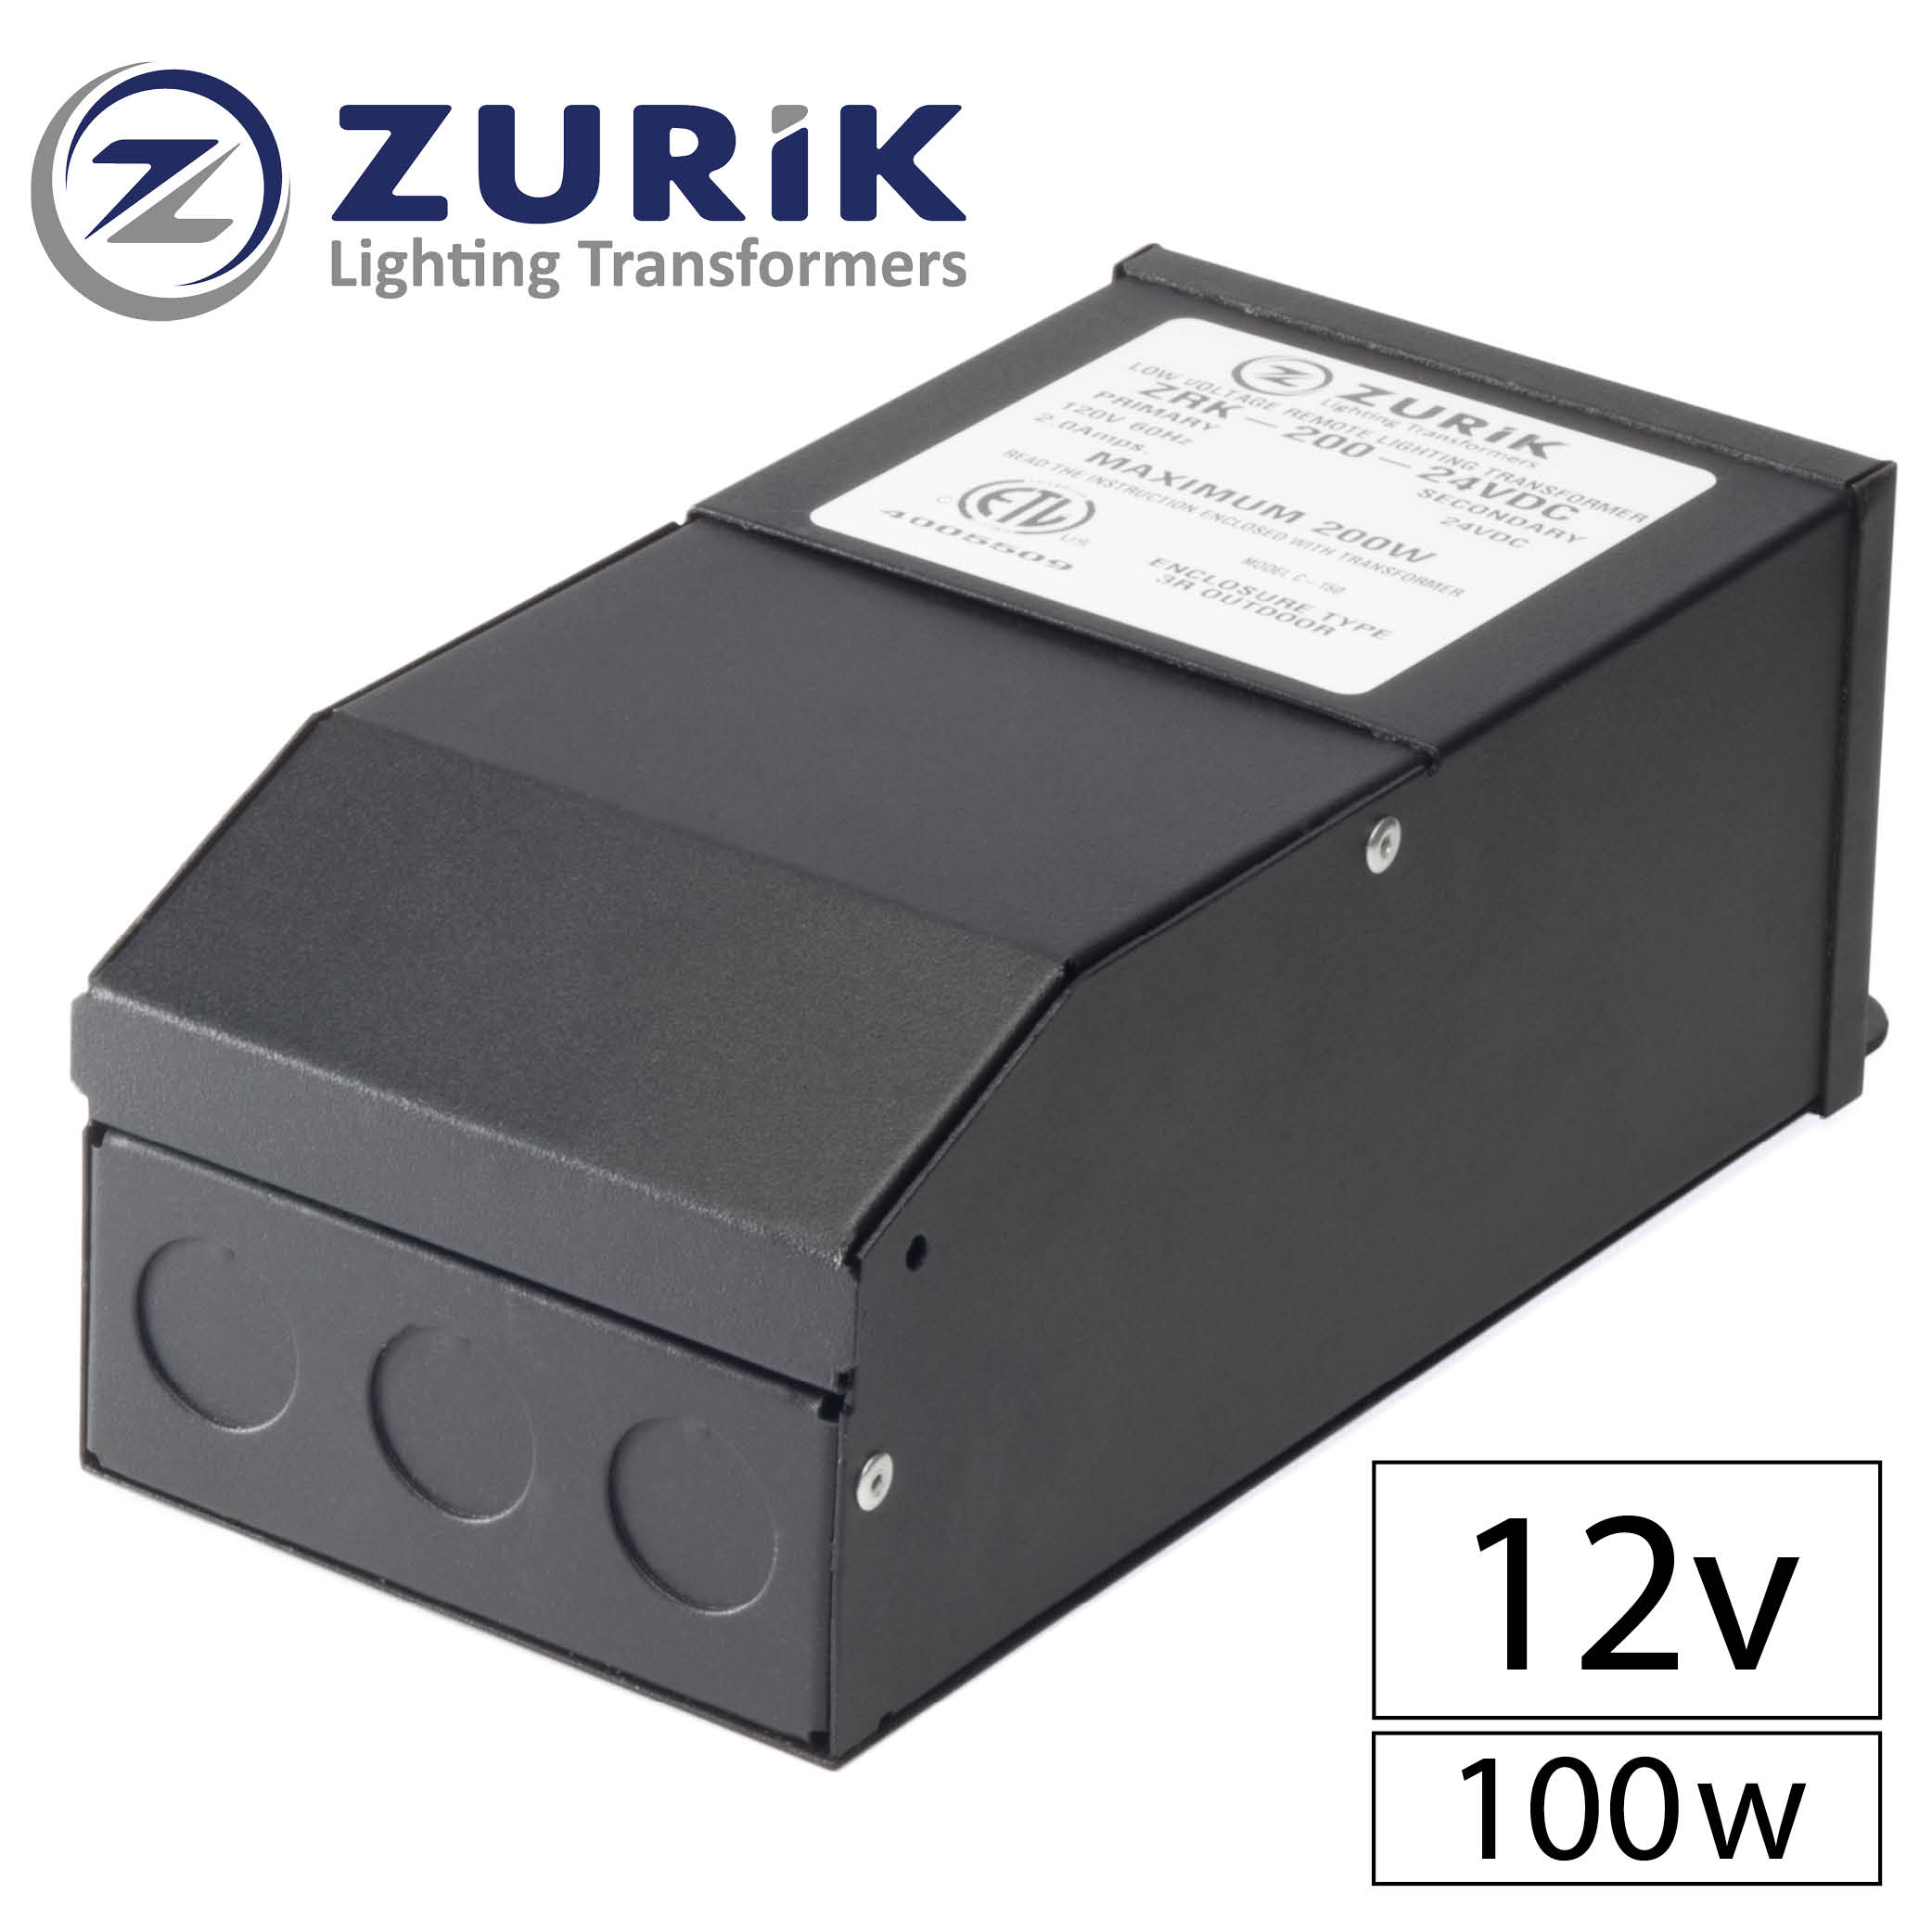 Zurik Dimmable LED driver